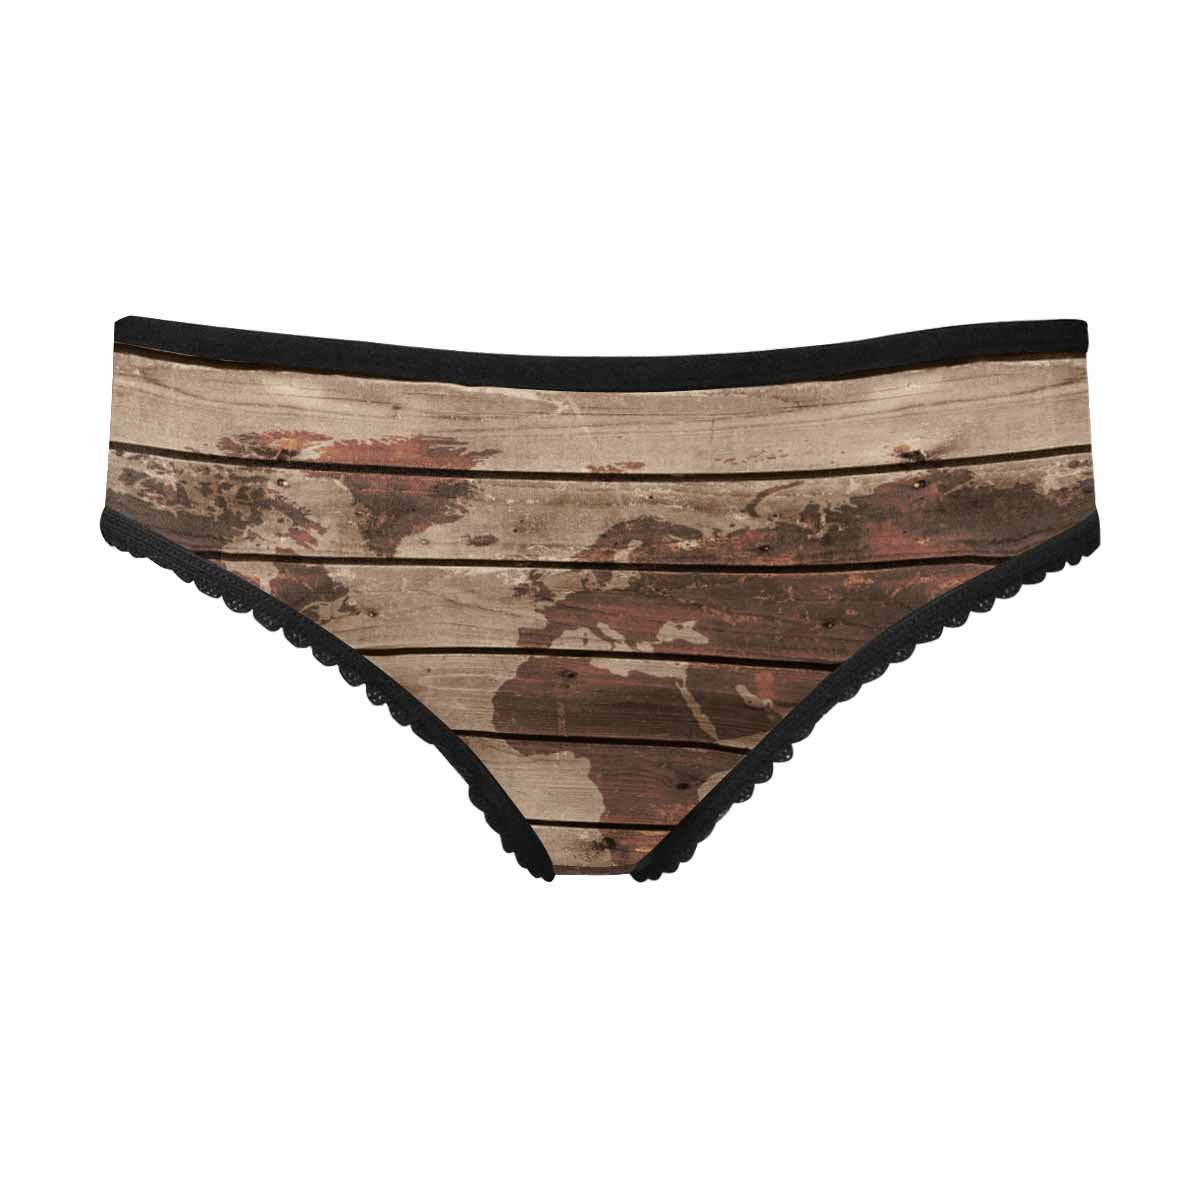 InterestPrint Women's Brief Panty Old Wood Texture with World Map in Vintage Style XL